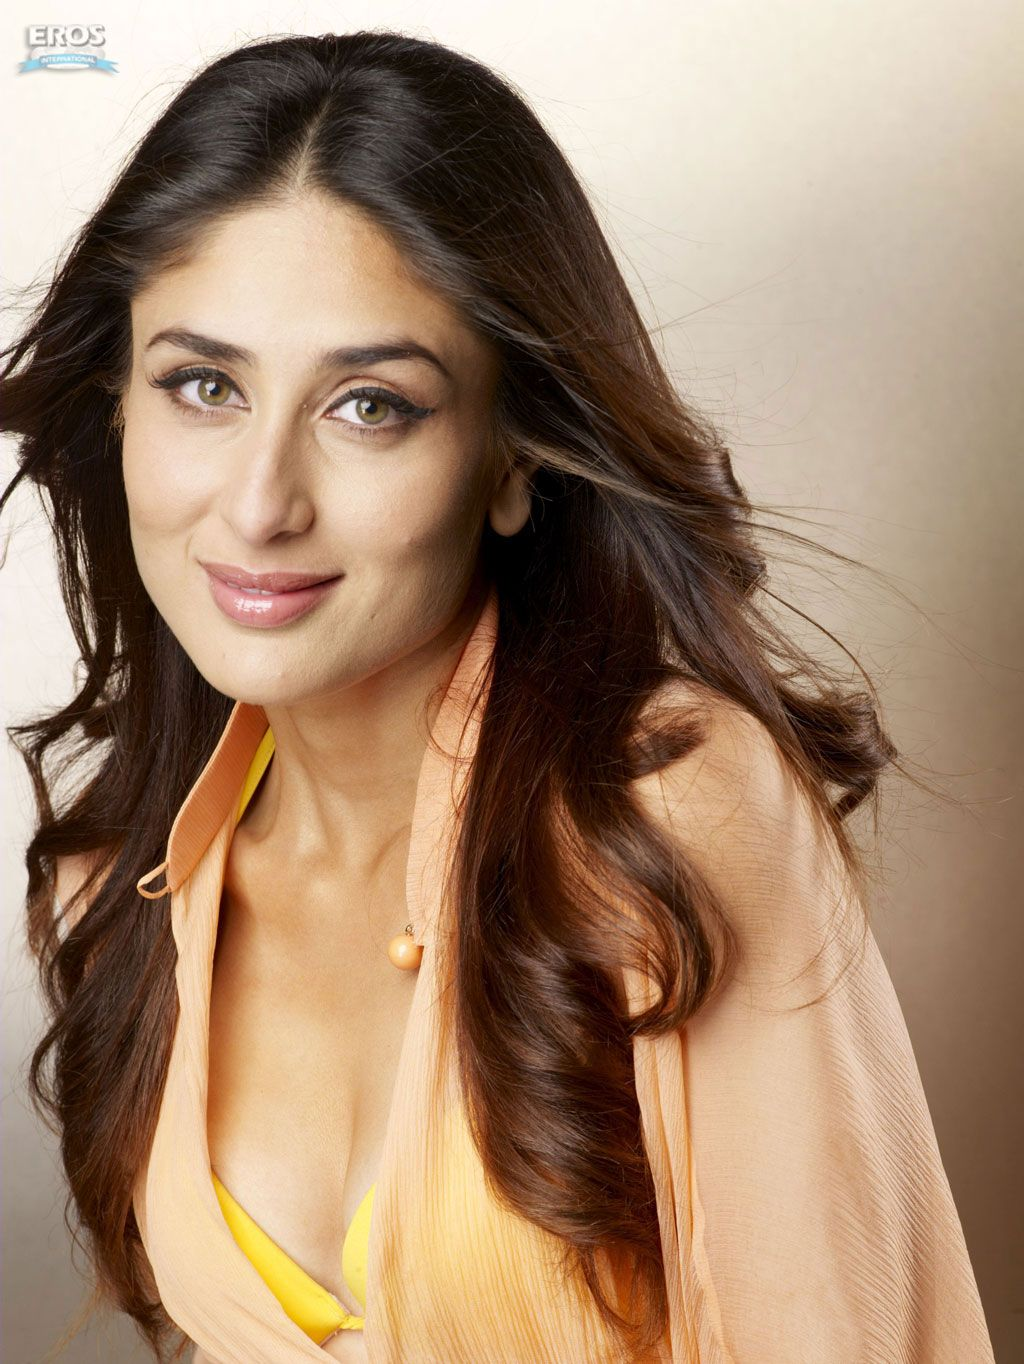 http://3.bp.blogspot.com/-FDONsA_CJP0/Tdg_68pvHrI/AAAAAAAAAHc/law4rFA81os/s1600/Kareena-Kapoor-Yellow-Bra-Dress%202.jpg